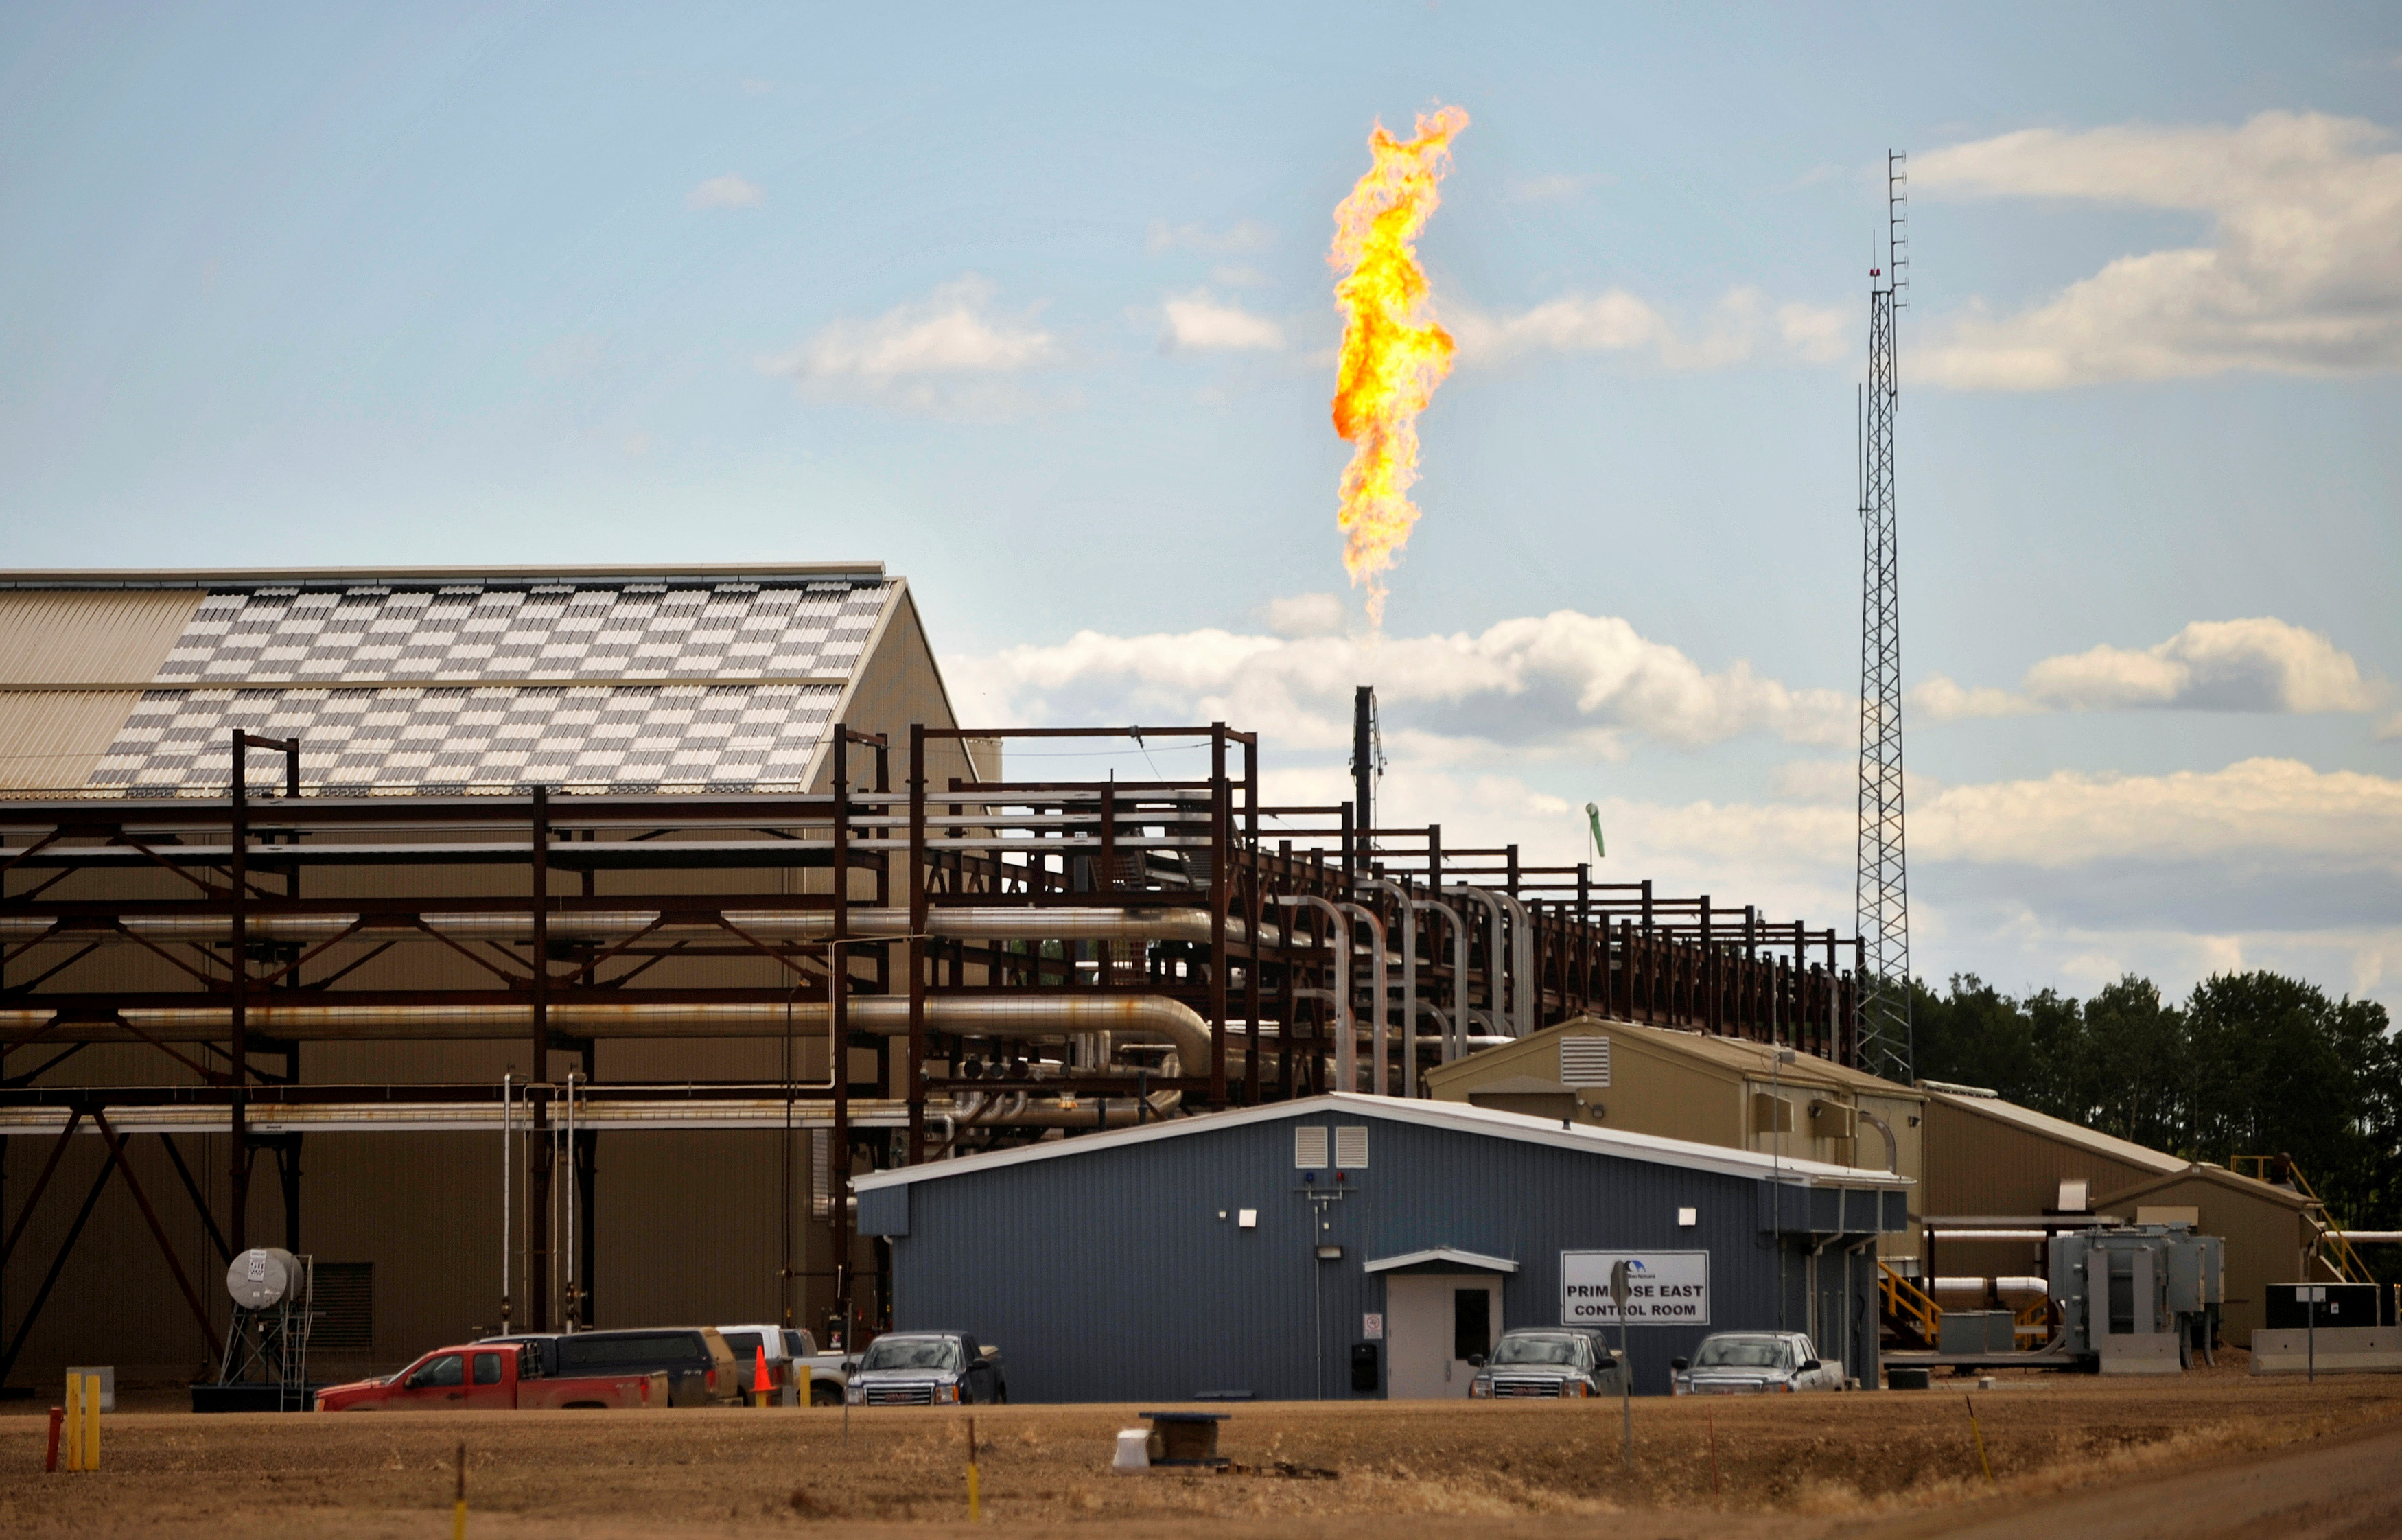 The suspension of steam generation forces this East Primrose steam plant to flare natural gas at Canadian Natural Resources Limited's (CNRL) Primrose Lake oil sands project near Cold Lake, Alberta August 8, 2013. REUTERS/Dan Riedlhuber